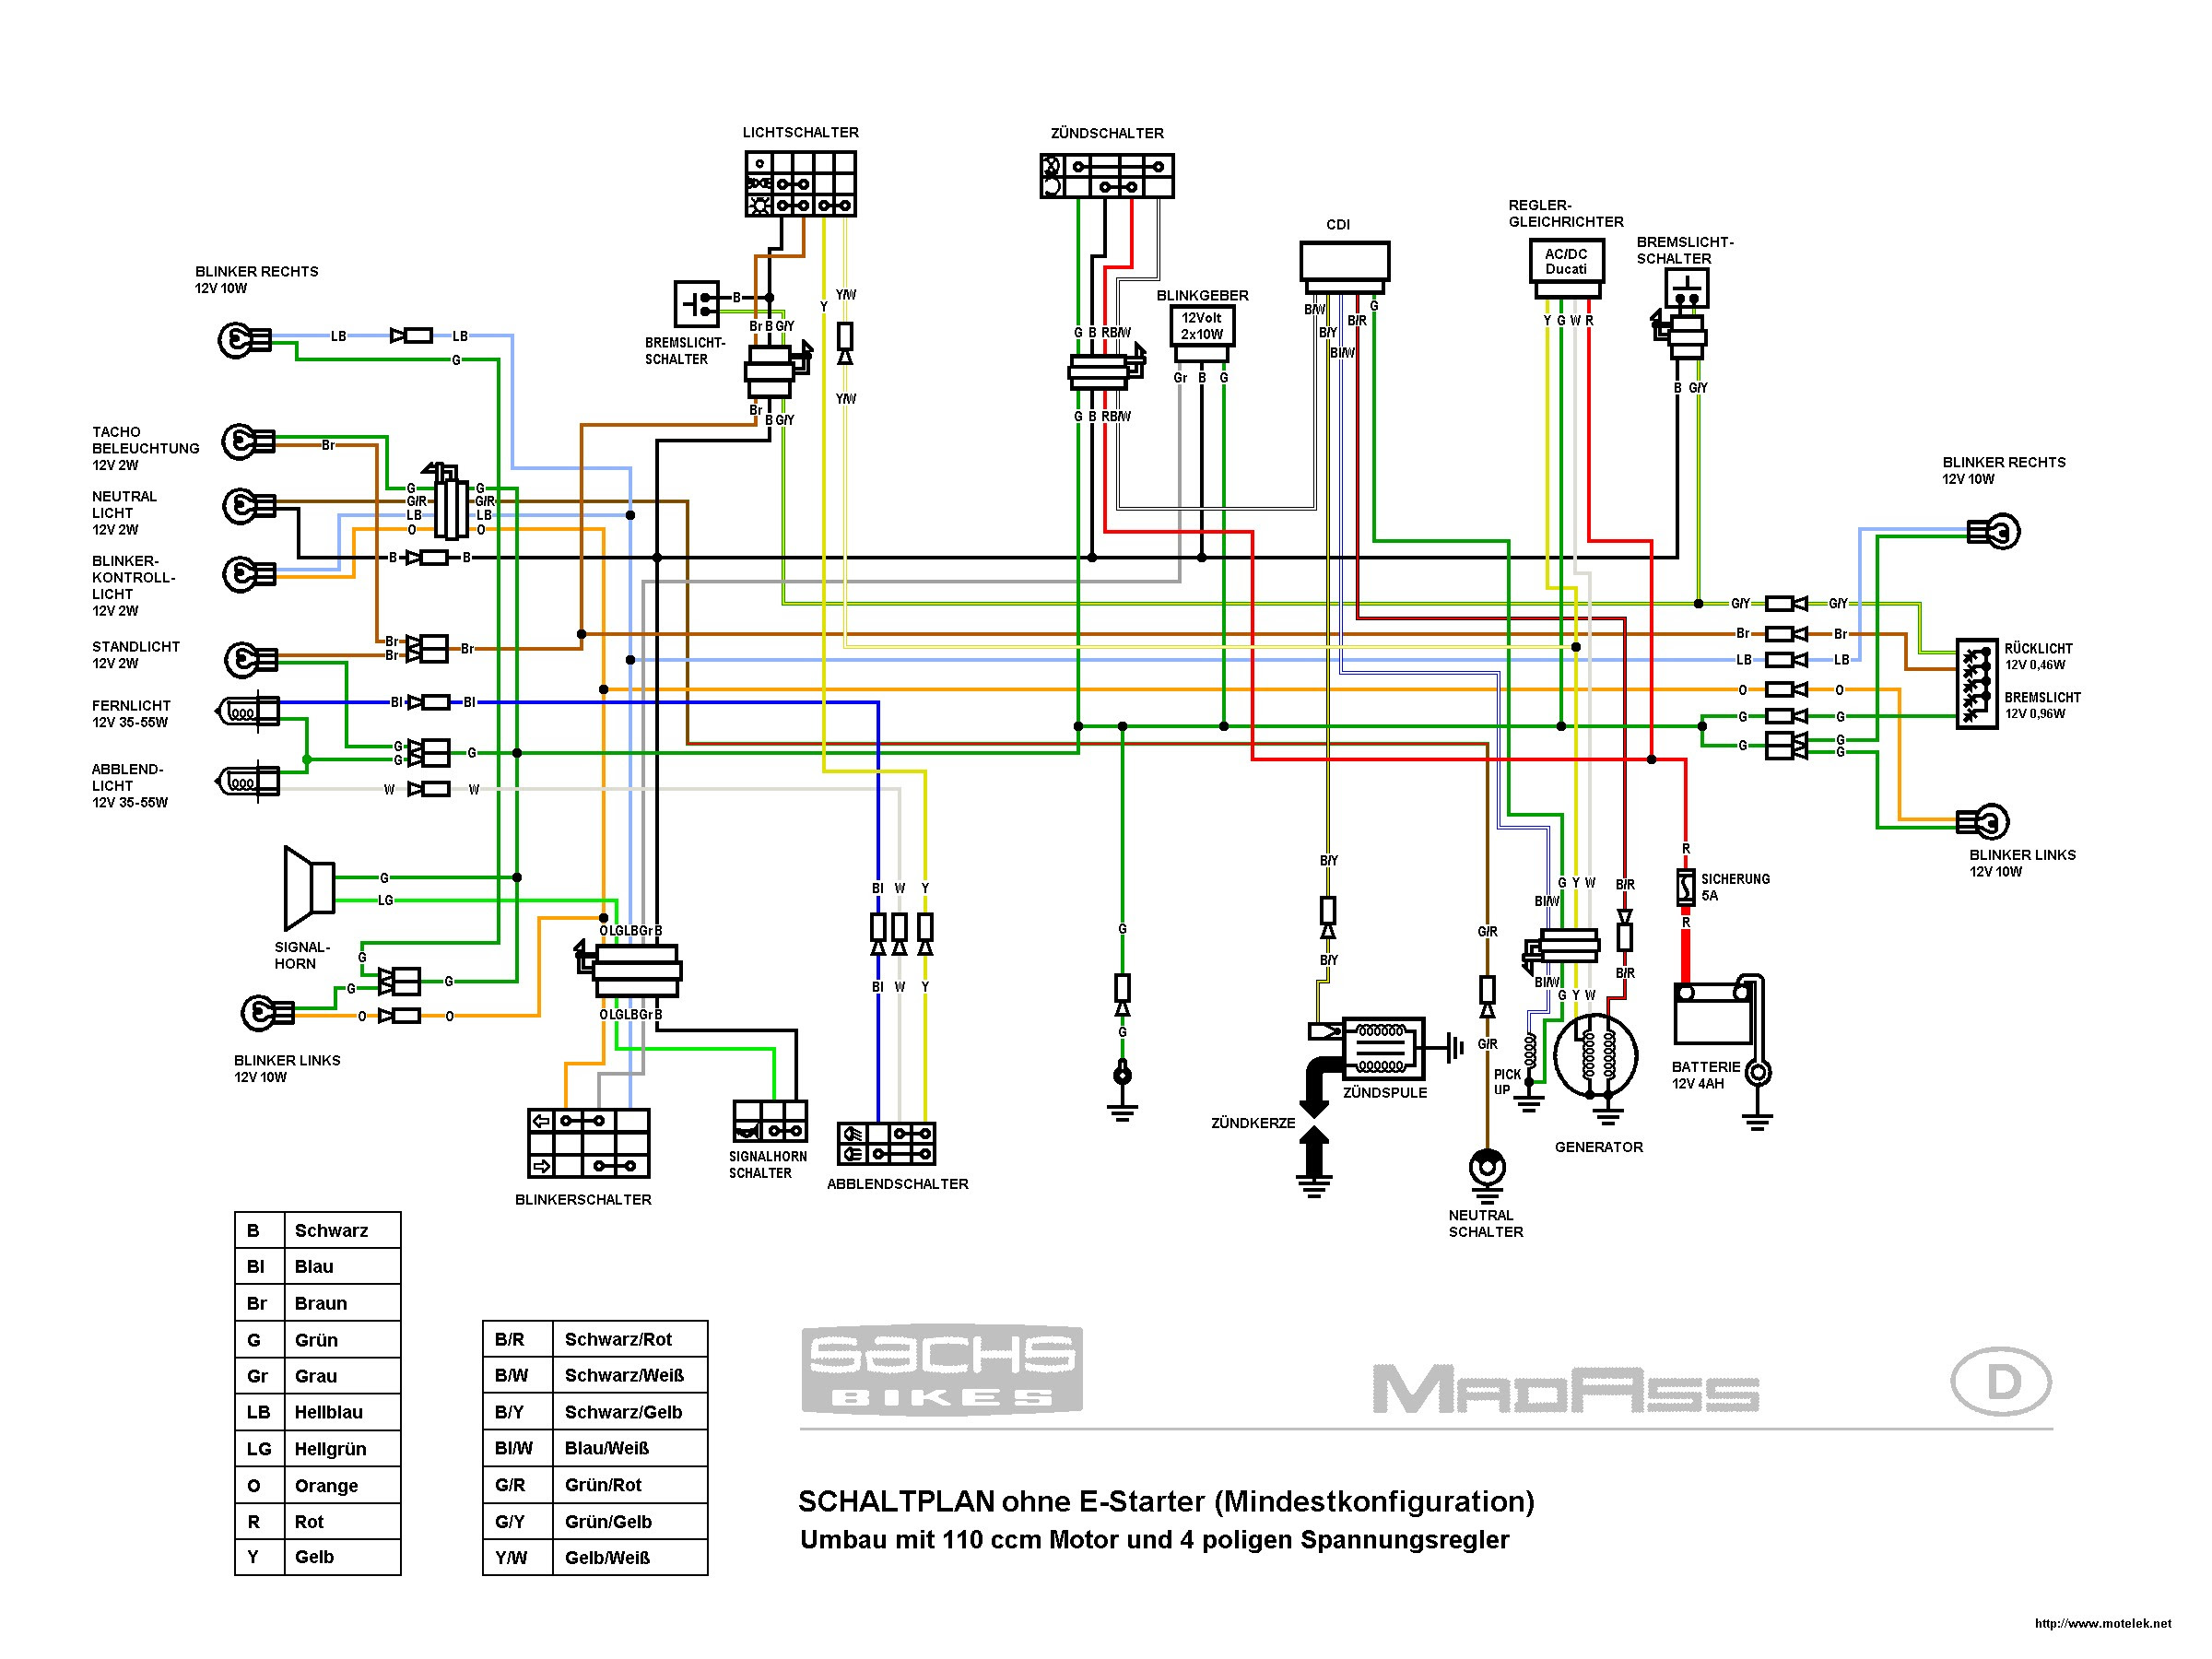 87eb49d Honda Motorcycle 125cc Wiring Diagram Wiring Resources